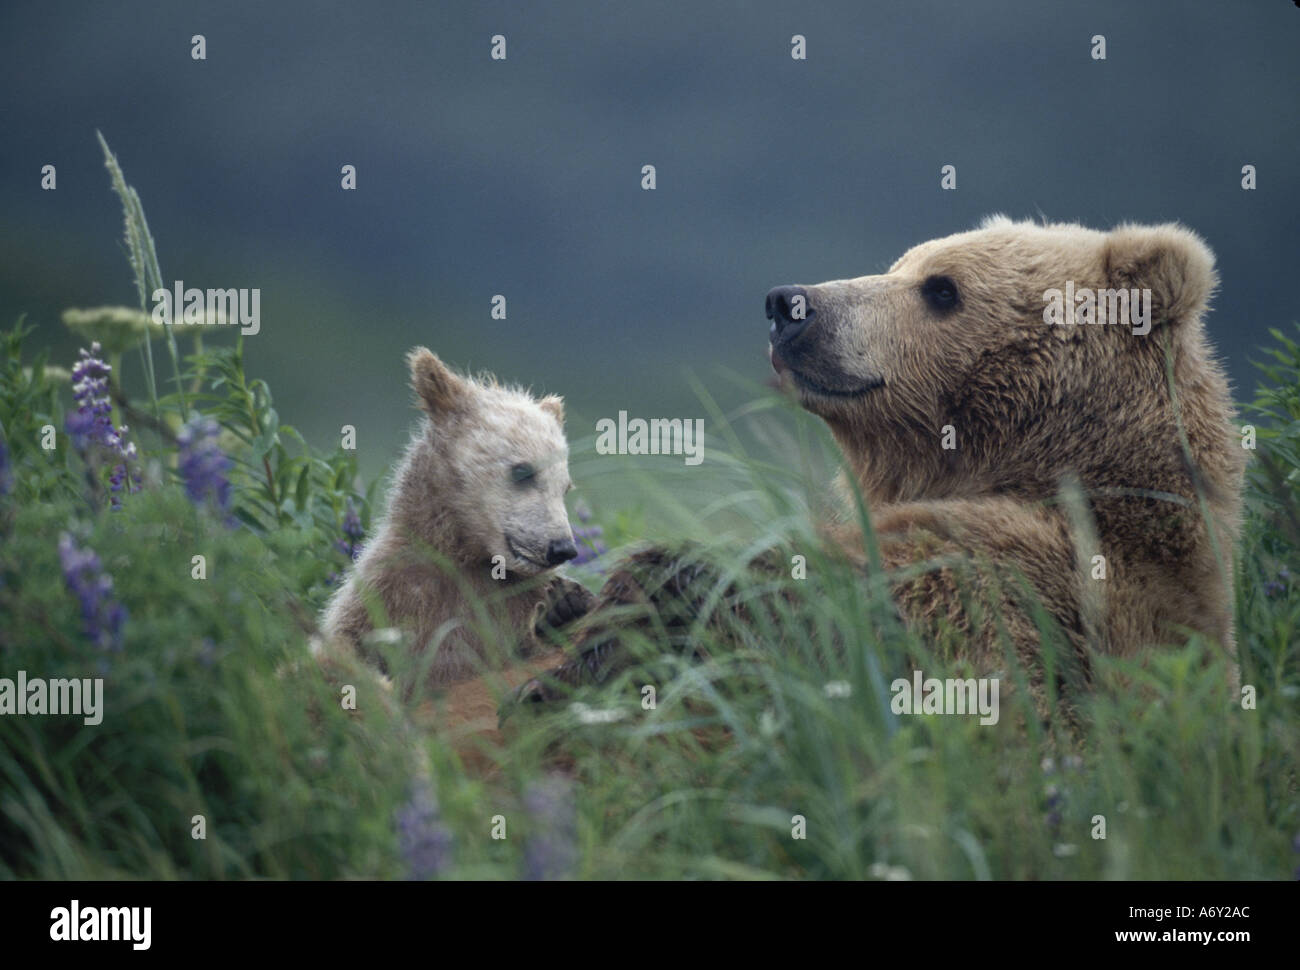 Sow Grizzly Cubs in Grass Hallo Bay Katmai NP Alaska - Stock Image